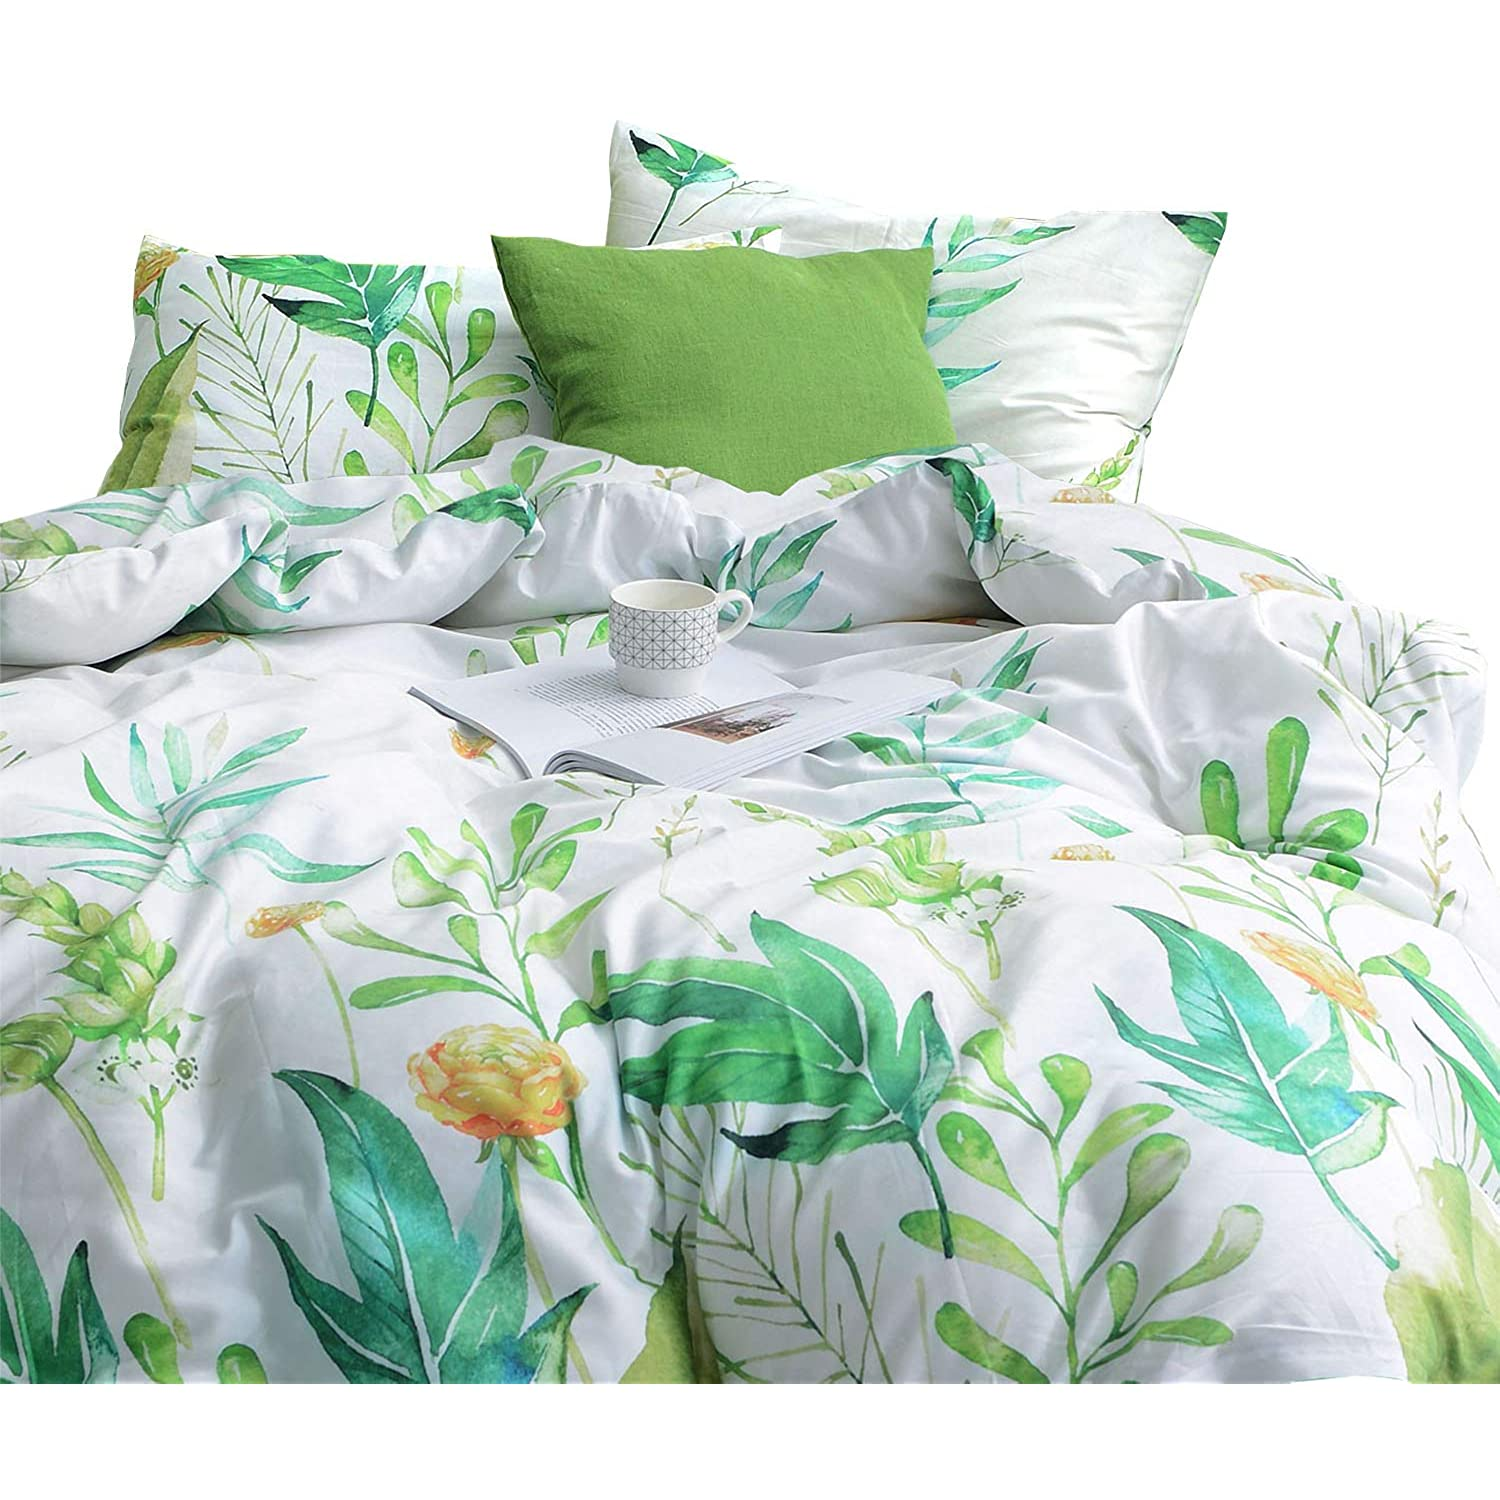 Wake In Cloud Floral Comforter Set 100 Cotton Fabric With Soft Microfiber Fill Bedding Botanical Flowers And Green Tree Leaves Pattern Printed On White 3pcs Queen Size Walmart Com Walmart Com